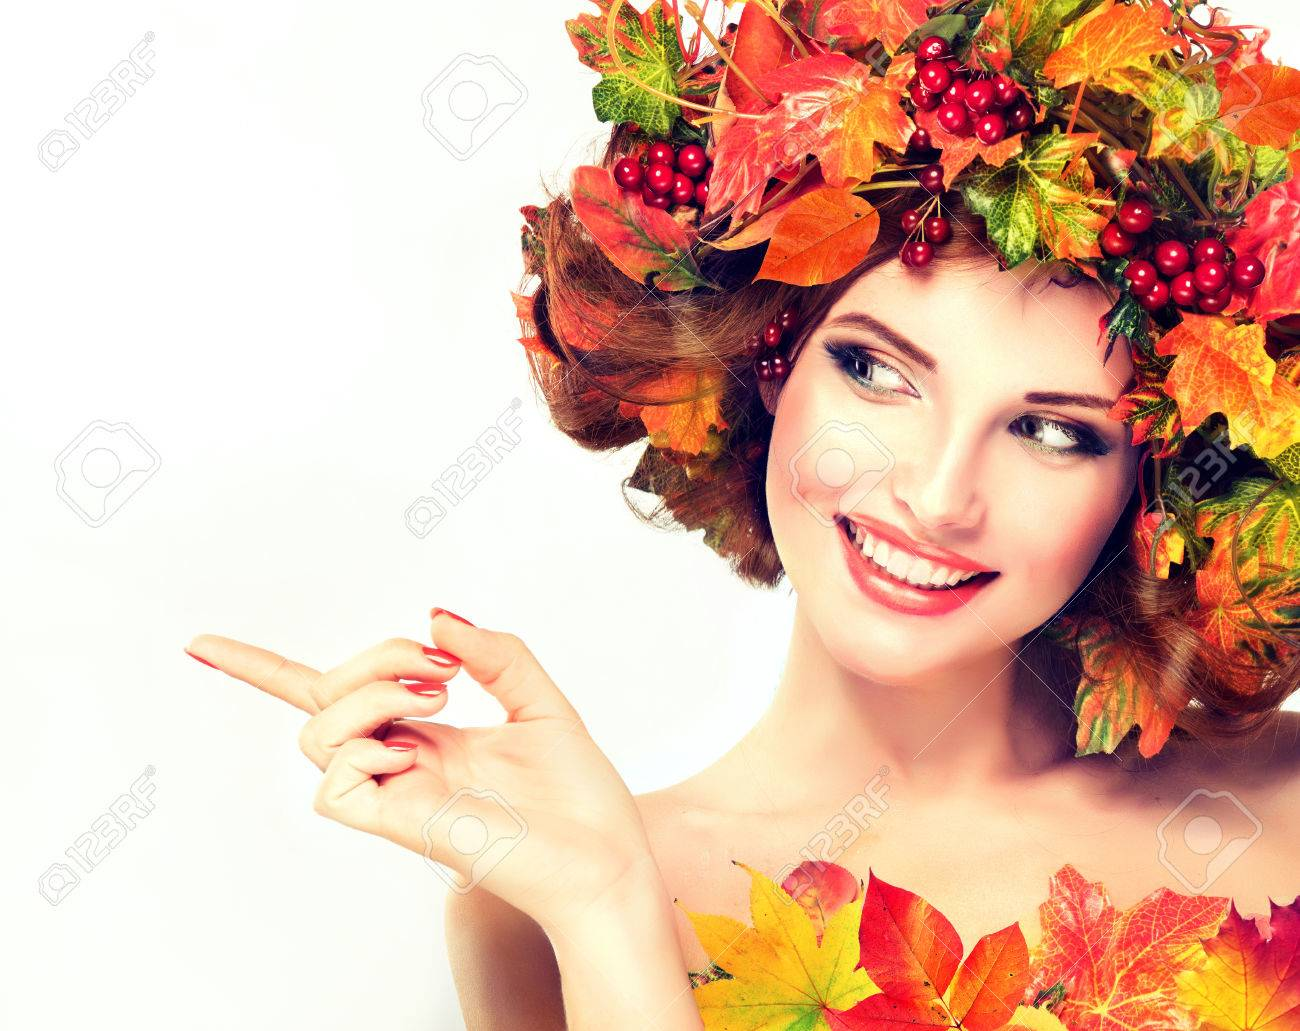 Autumn Beauty. Red and yellow autumn leaves and red berry in wreath on girl head. - 62522721